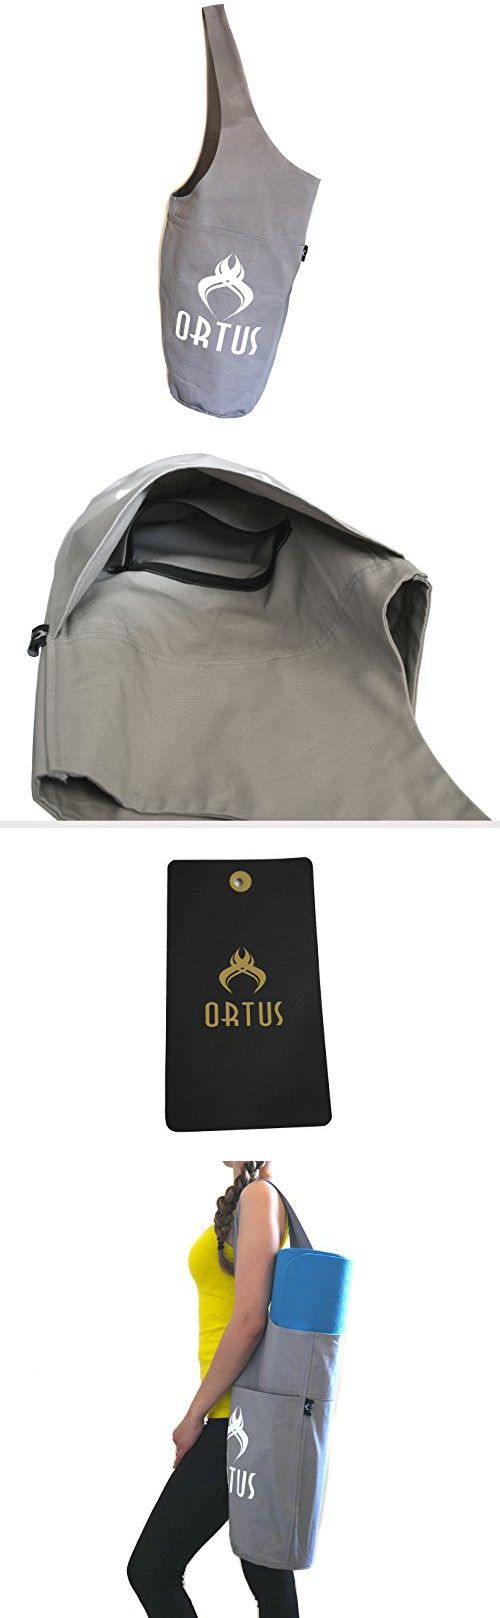 Premium Yoga Mat Bag by ORTUS, Cotton Yoga Exercise Mat Tote Bags Sling Carrier With Large Side Pocket & Zipper Pocket, Large & Fitting All Standard Size Yoga Mats & Yoga Accessories (GRAY)